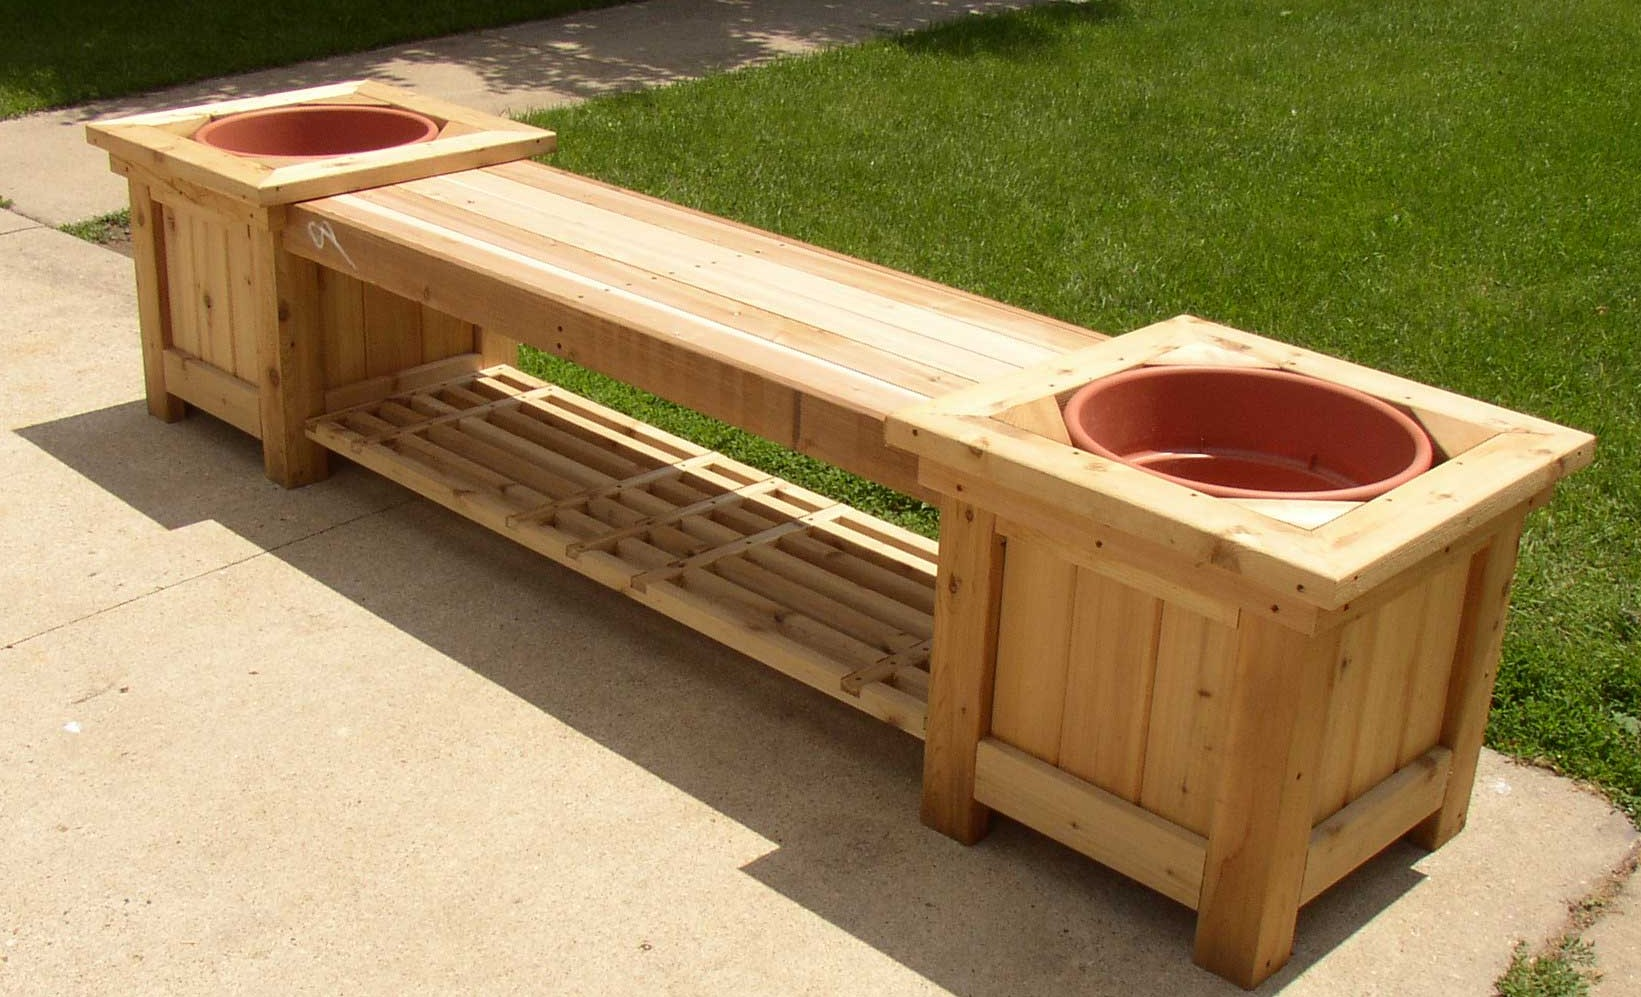 , Build Display Case Wood, Diy Wooden Planter Plans, Home Build ...